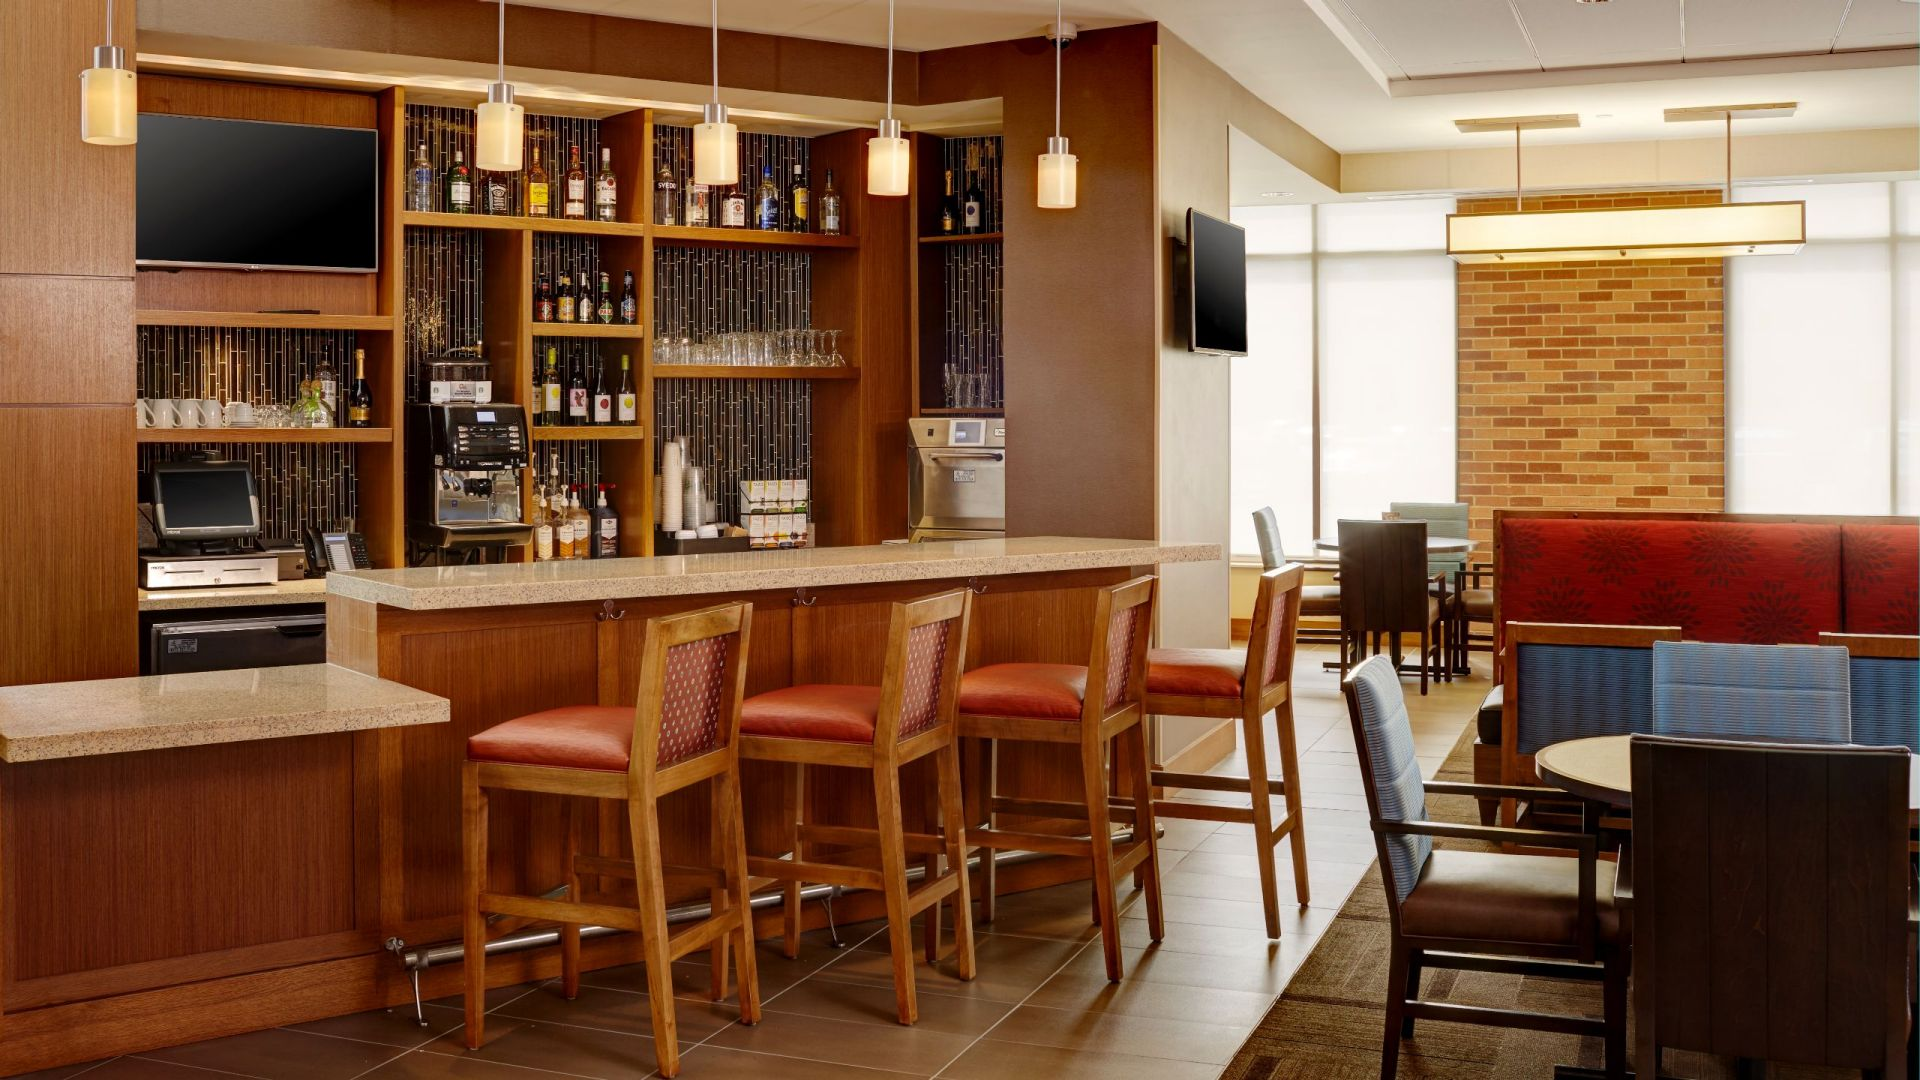 Hyatt Place New York/Yonkers Bar